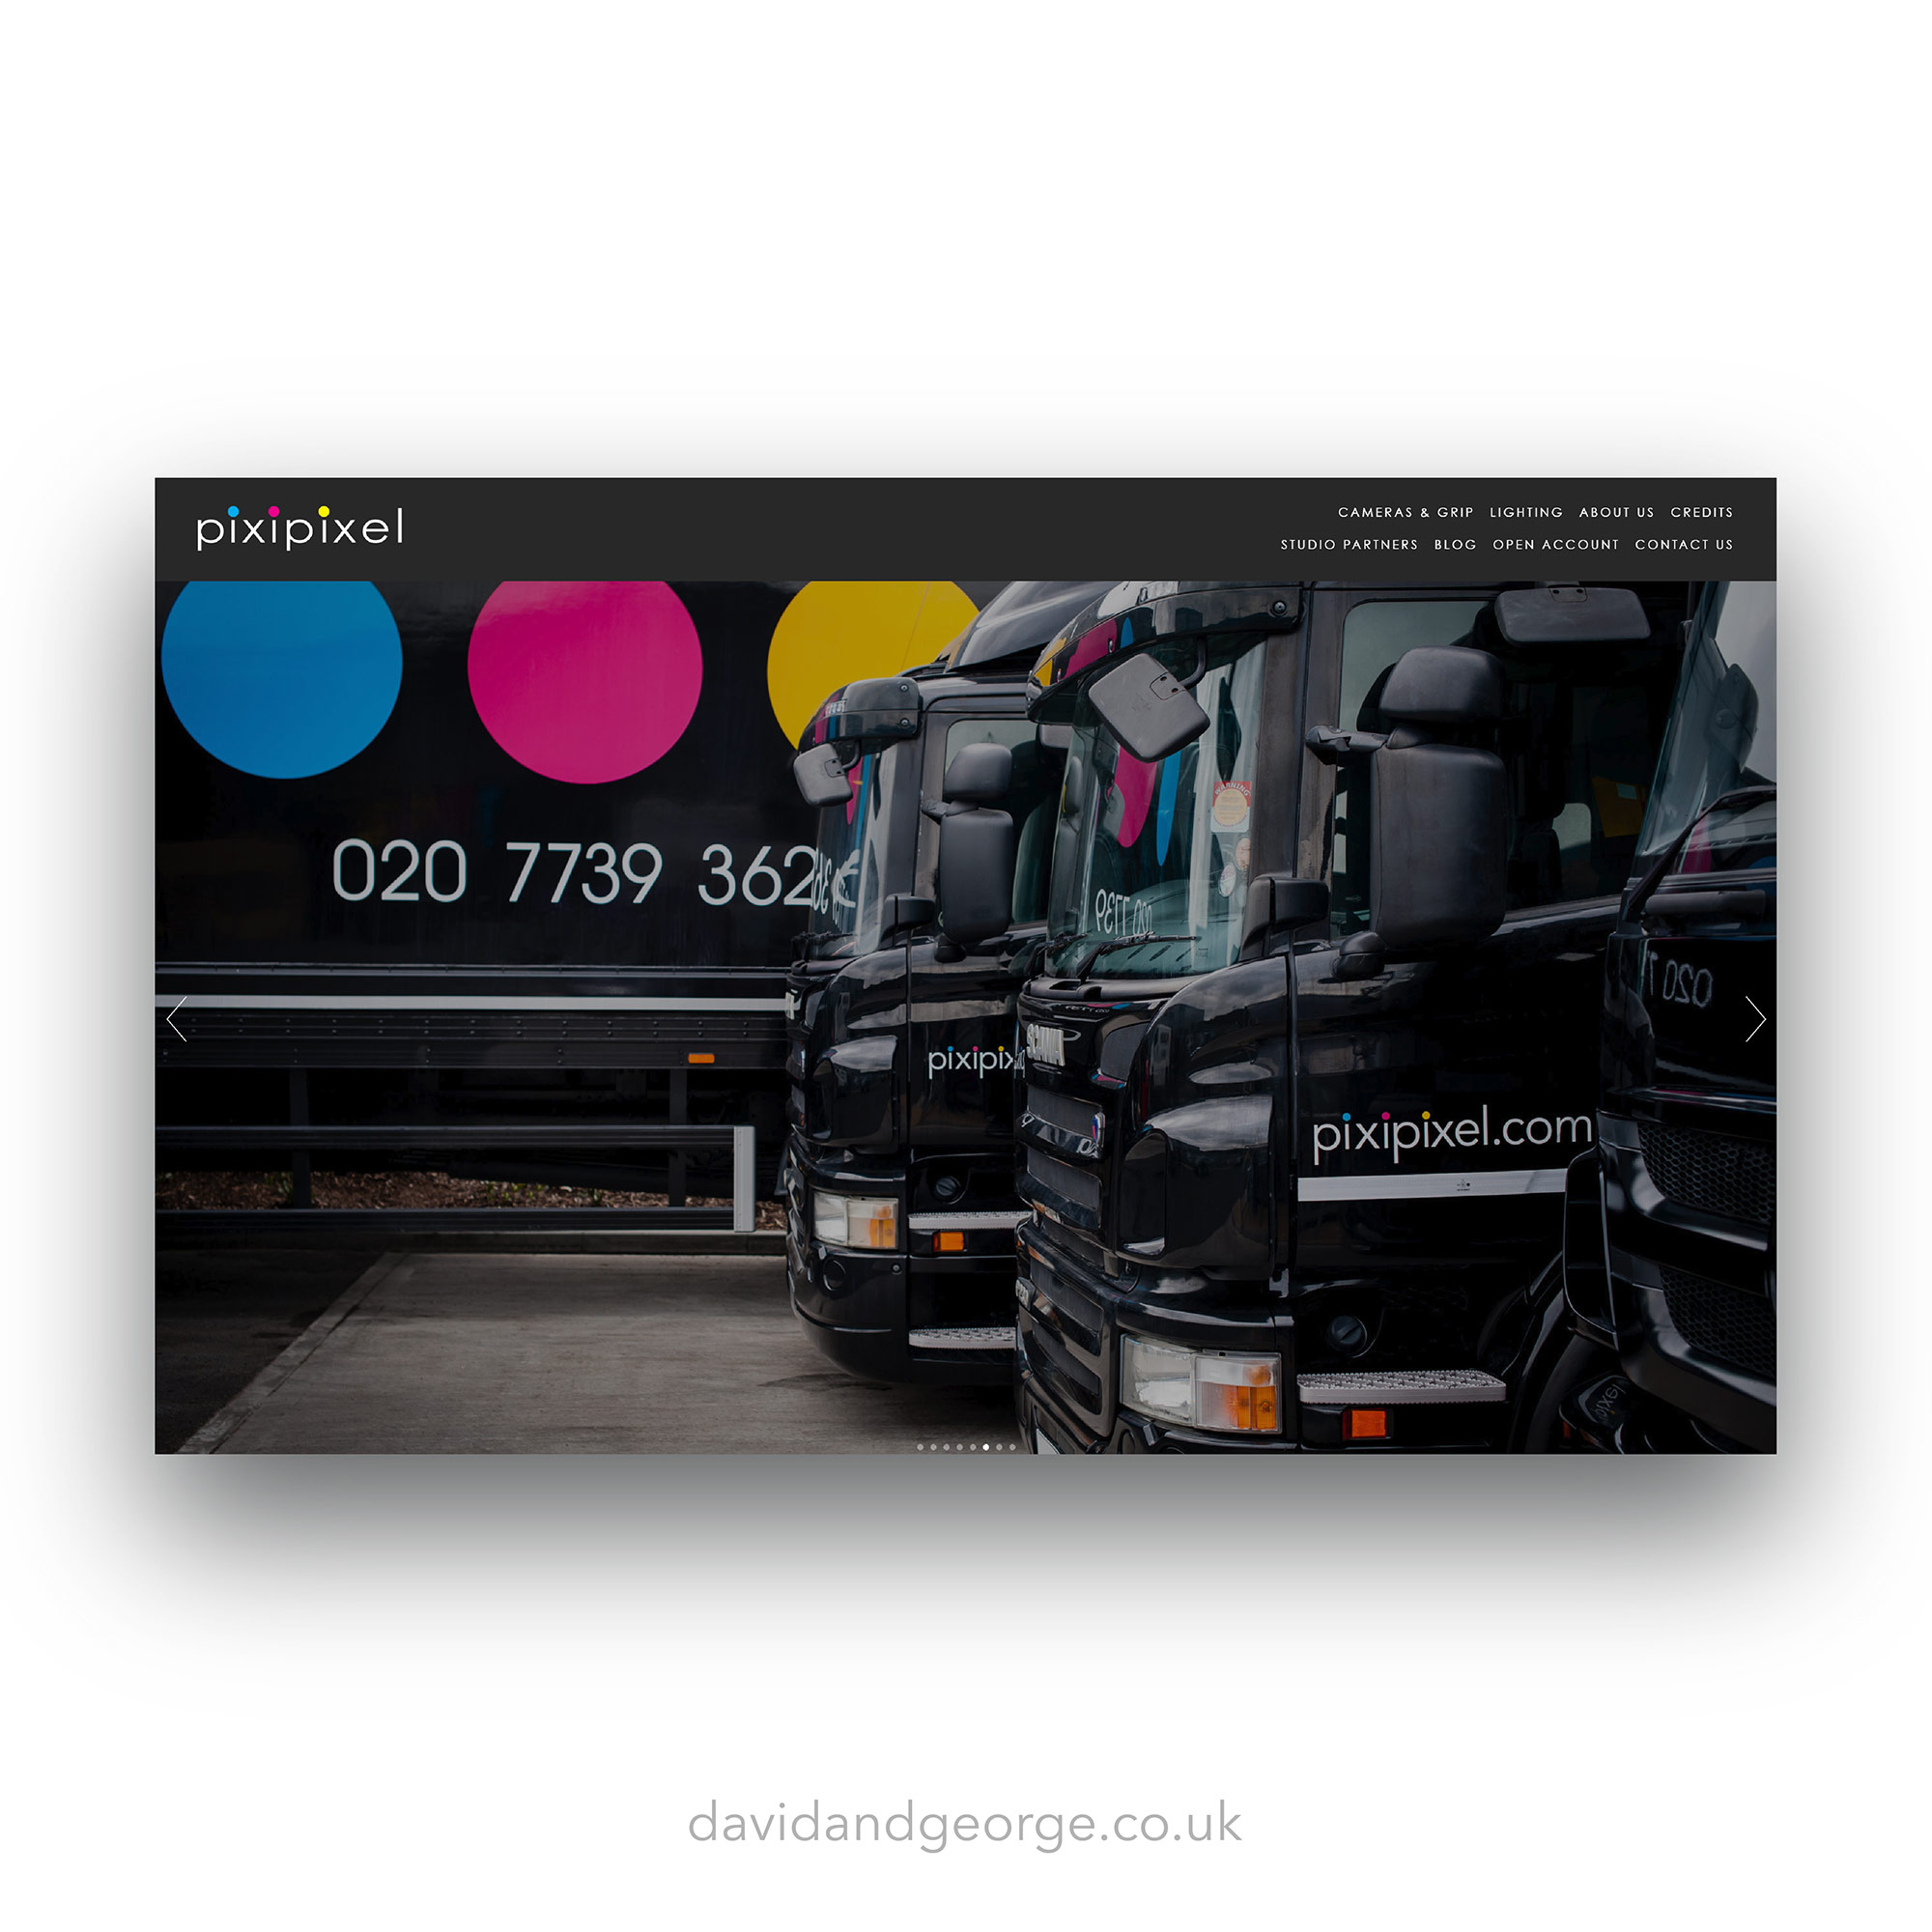 squarespace-website-design-london-edinburgh-uk-david-and-george-pixipixel-camera-equipment-hire-film-industry-website.jpg